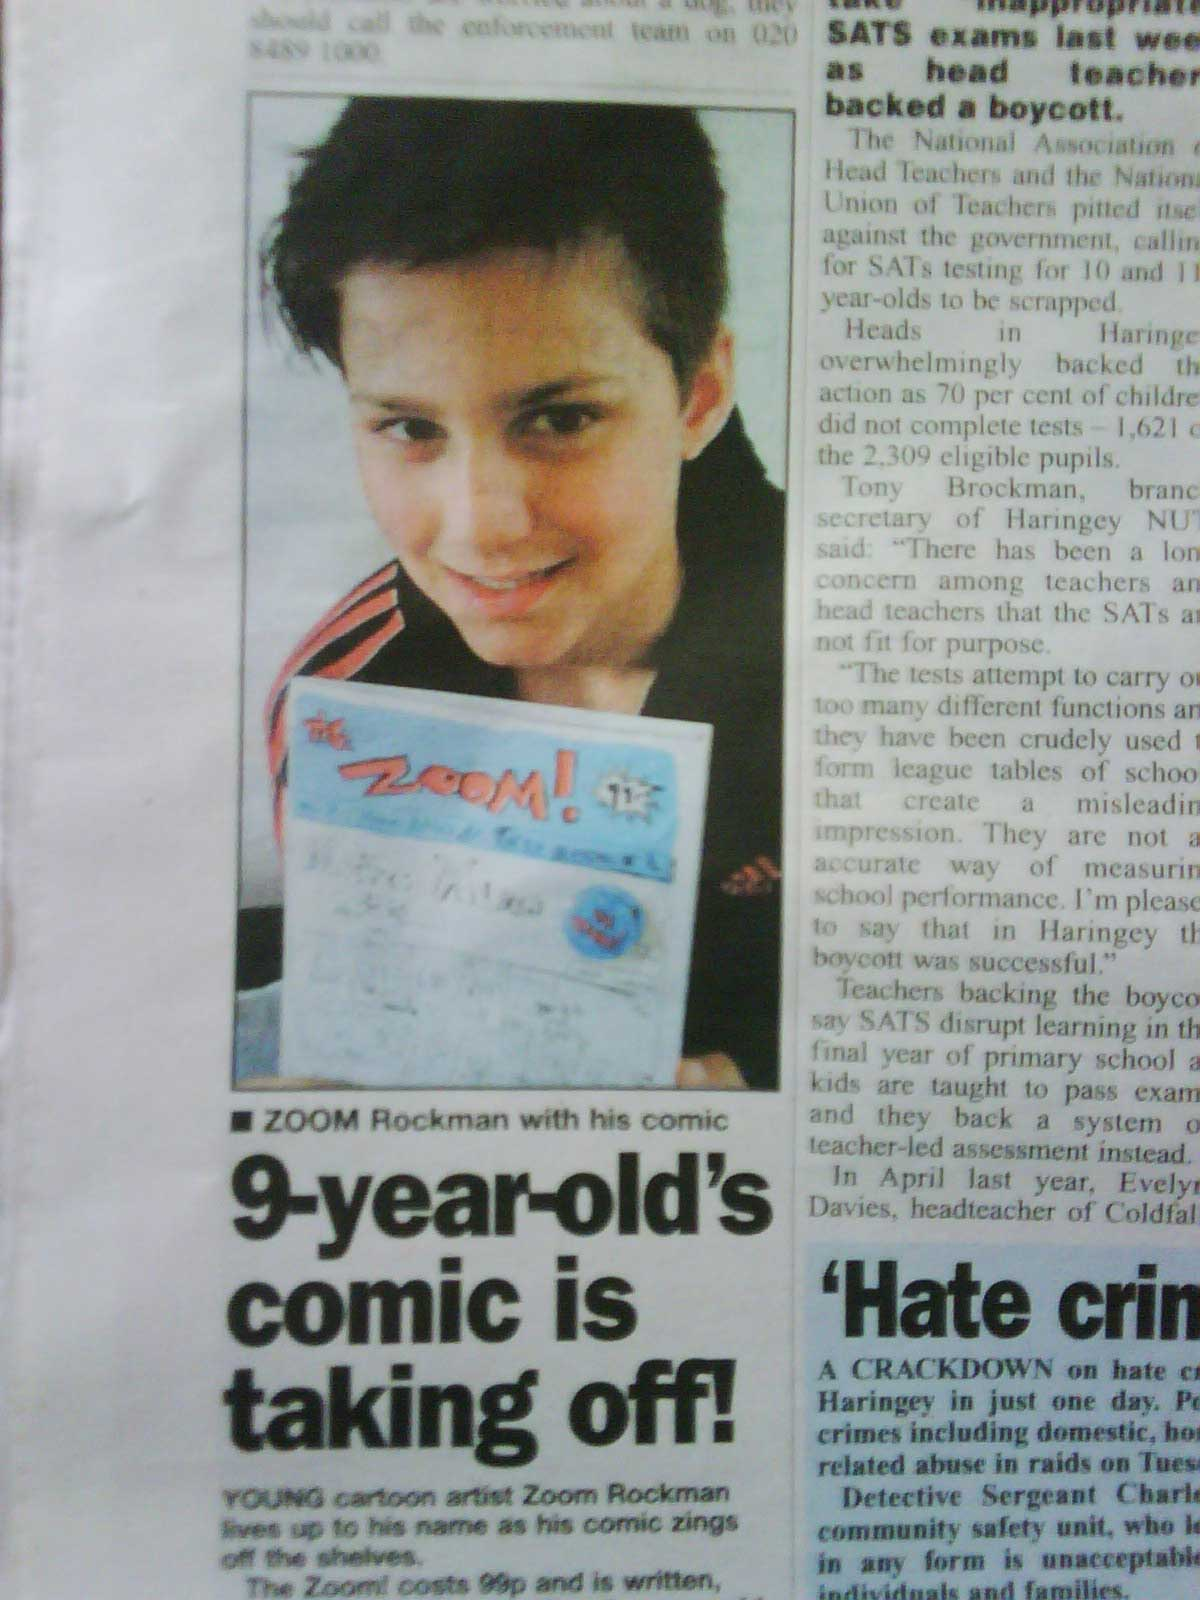 Hornsey Journal featuring Zoom Rockman